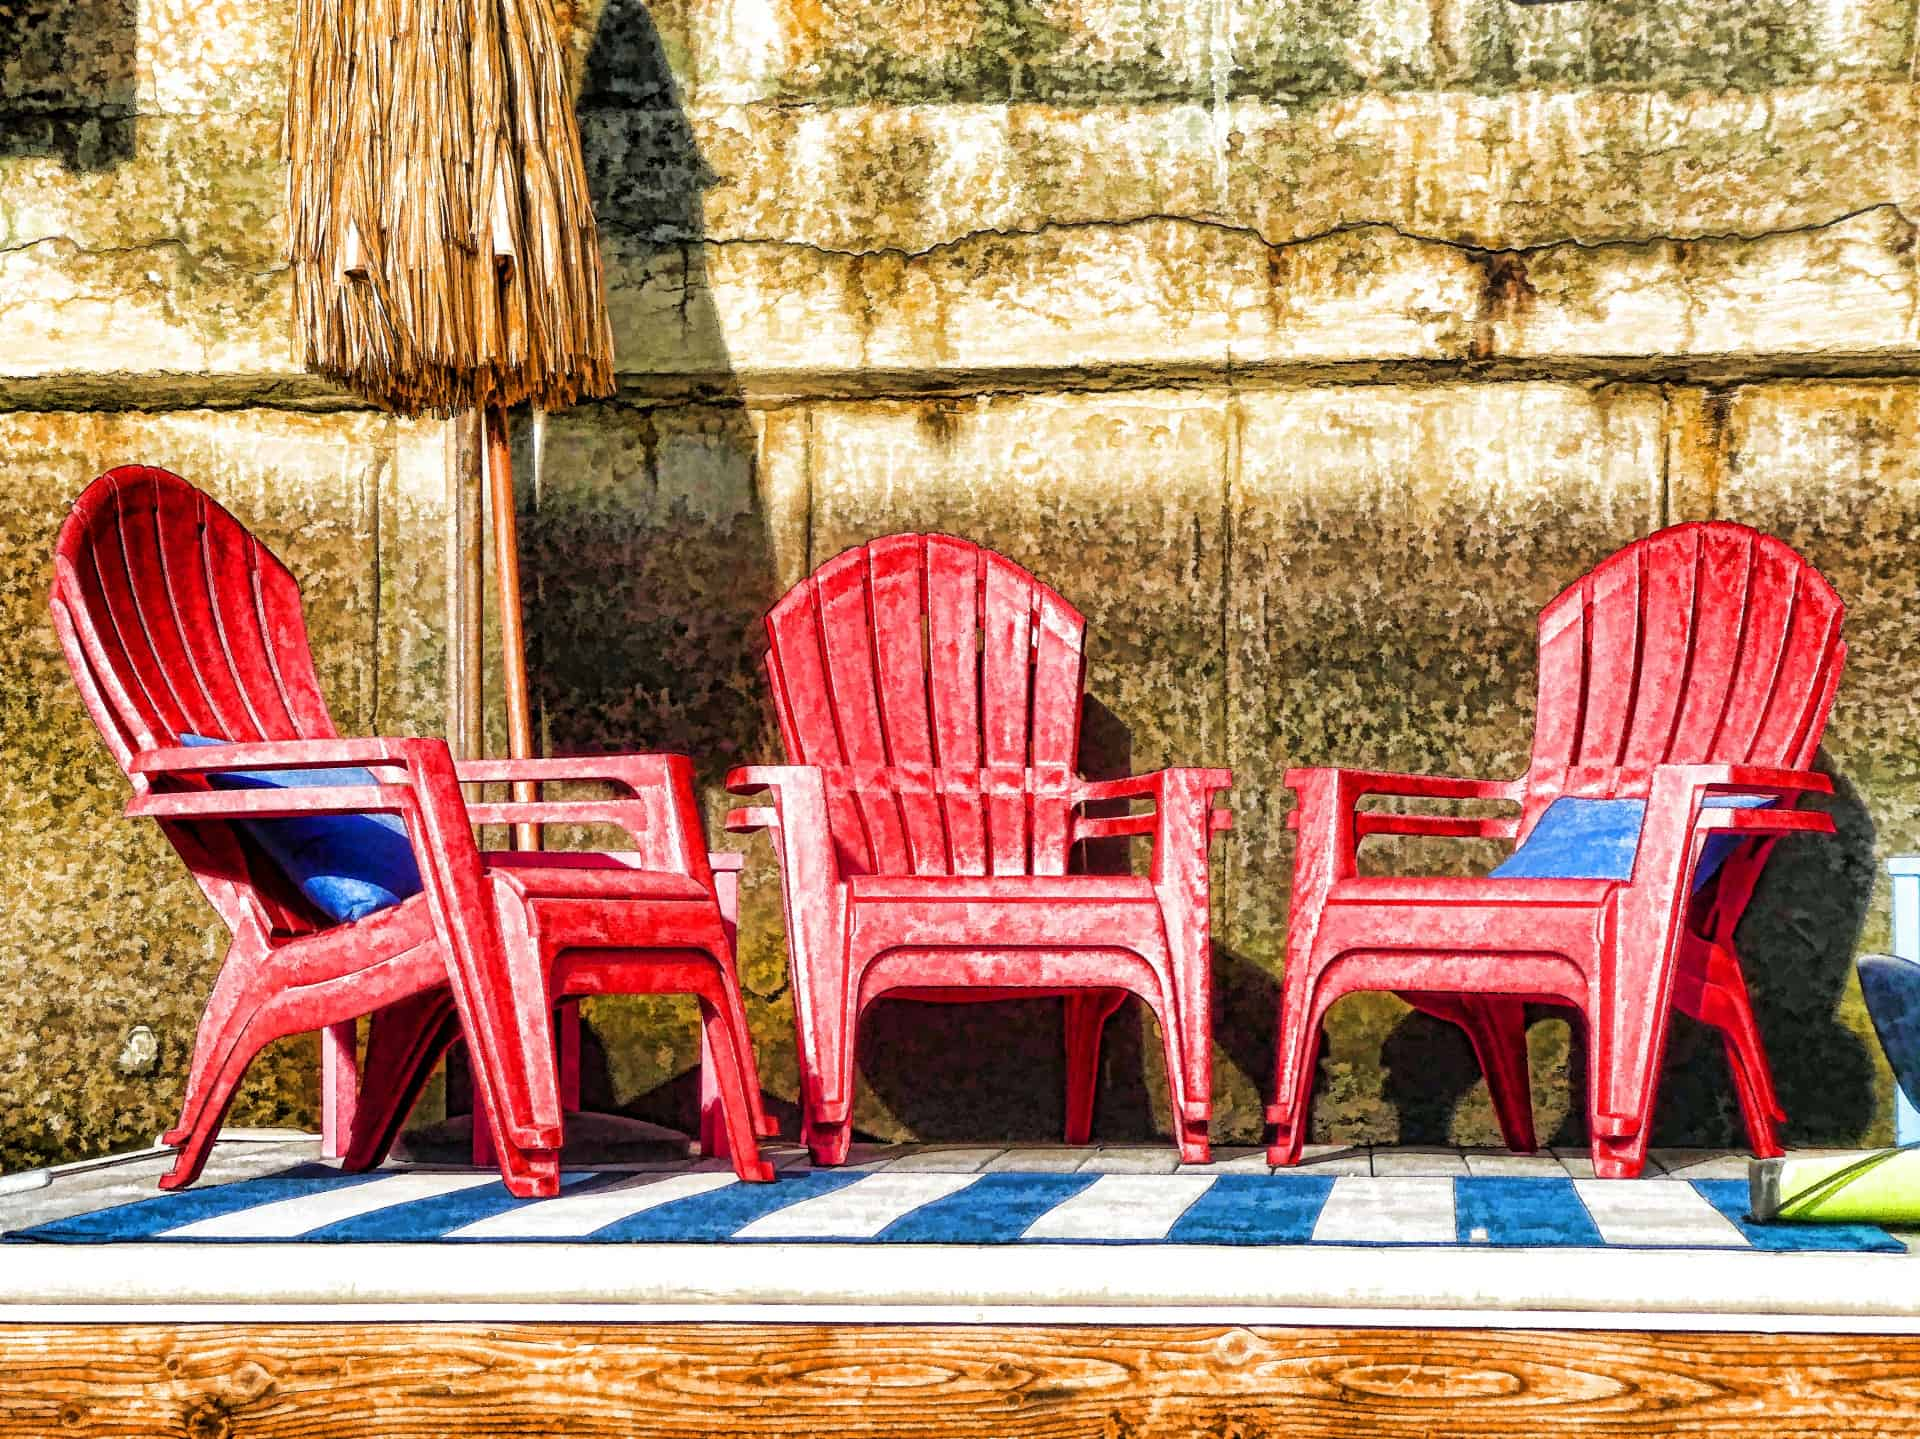 How To Keep Outdoor Rug From Blowing Away: 5 tips right to the point